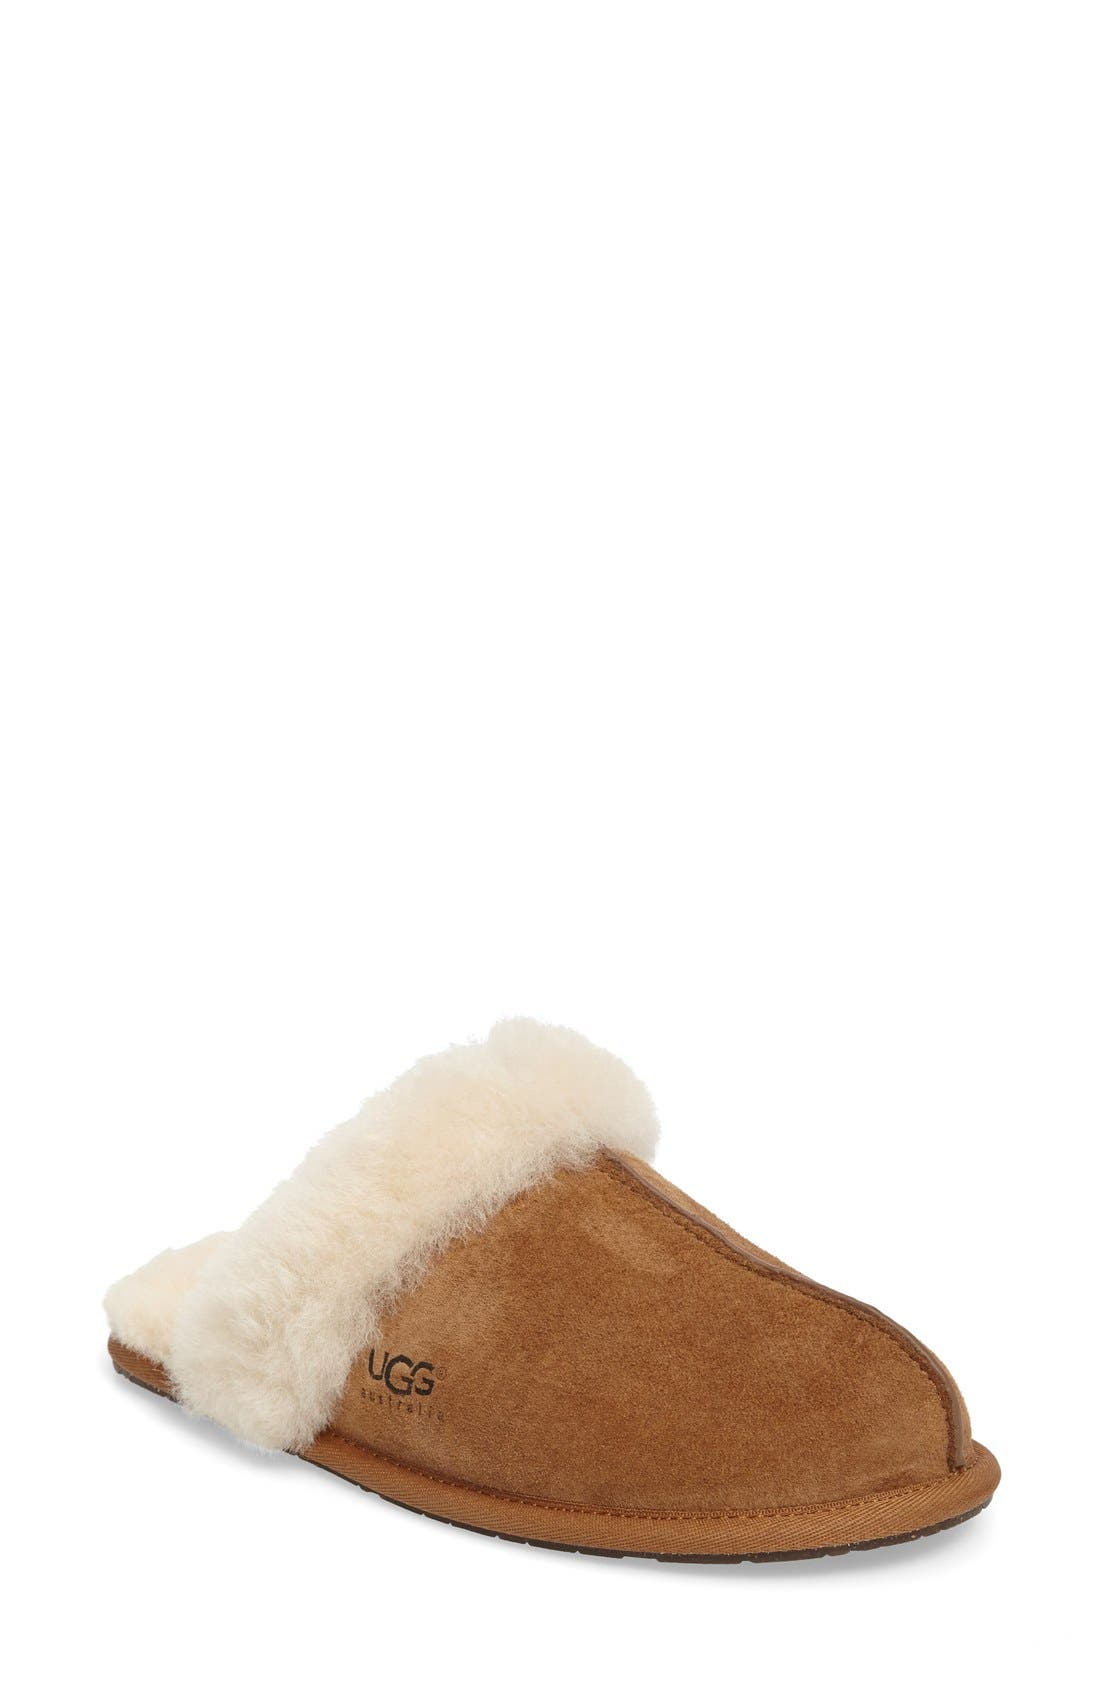 Main Image - UGG® Scuffette II Slipper (Women)